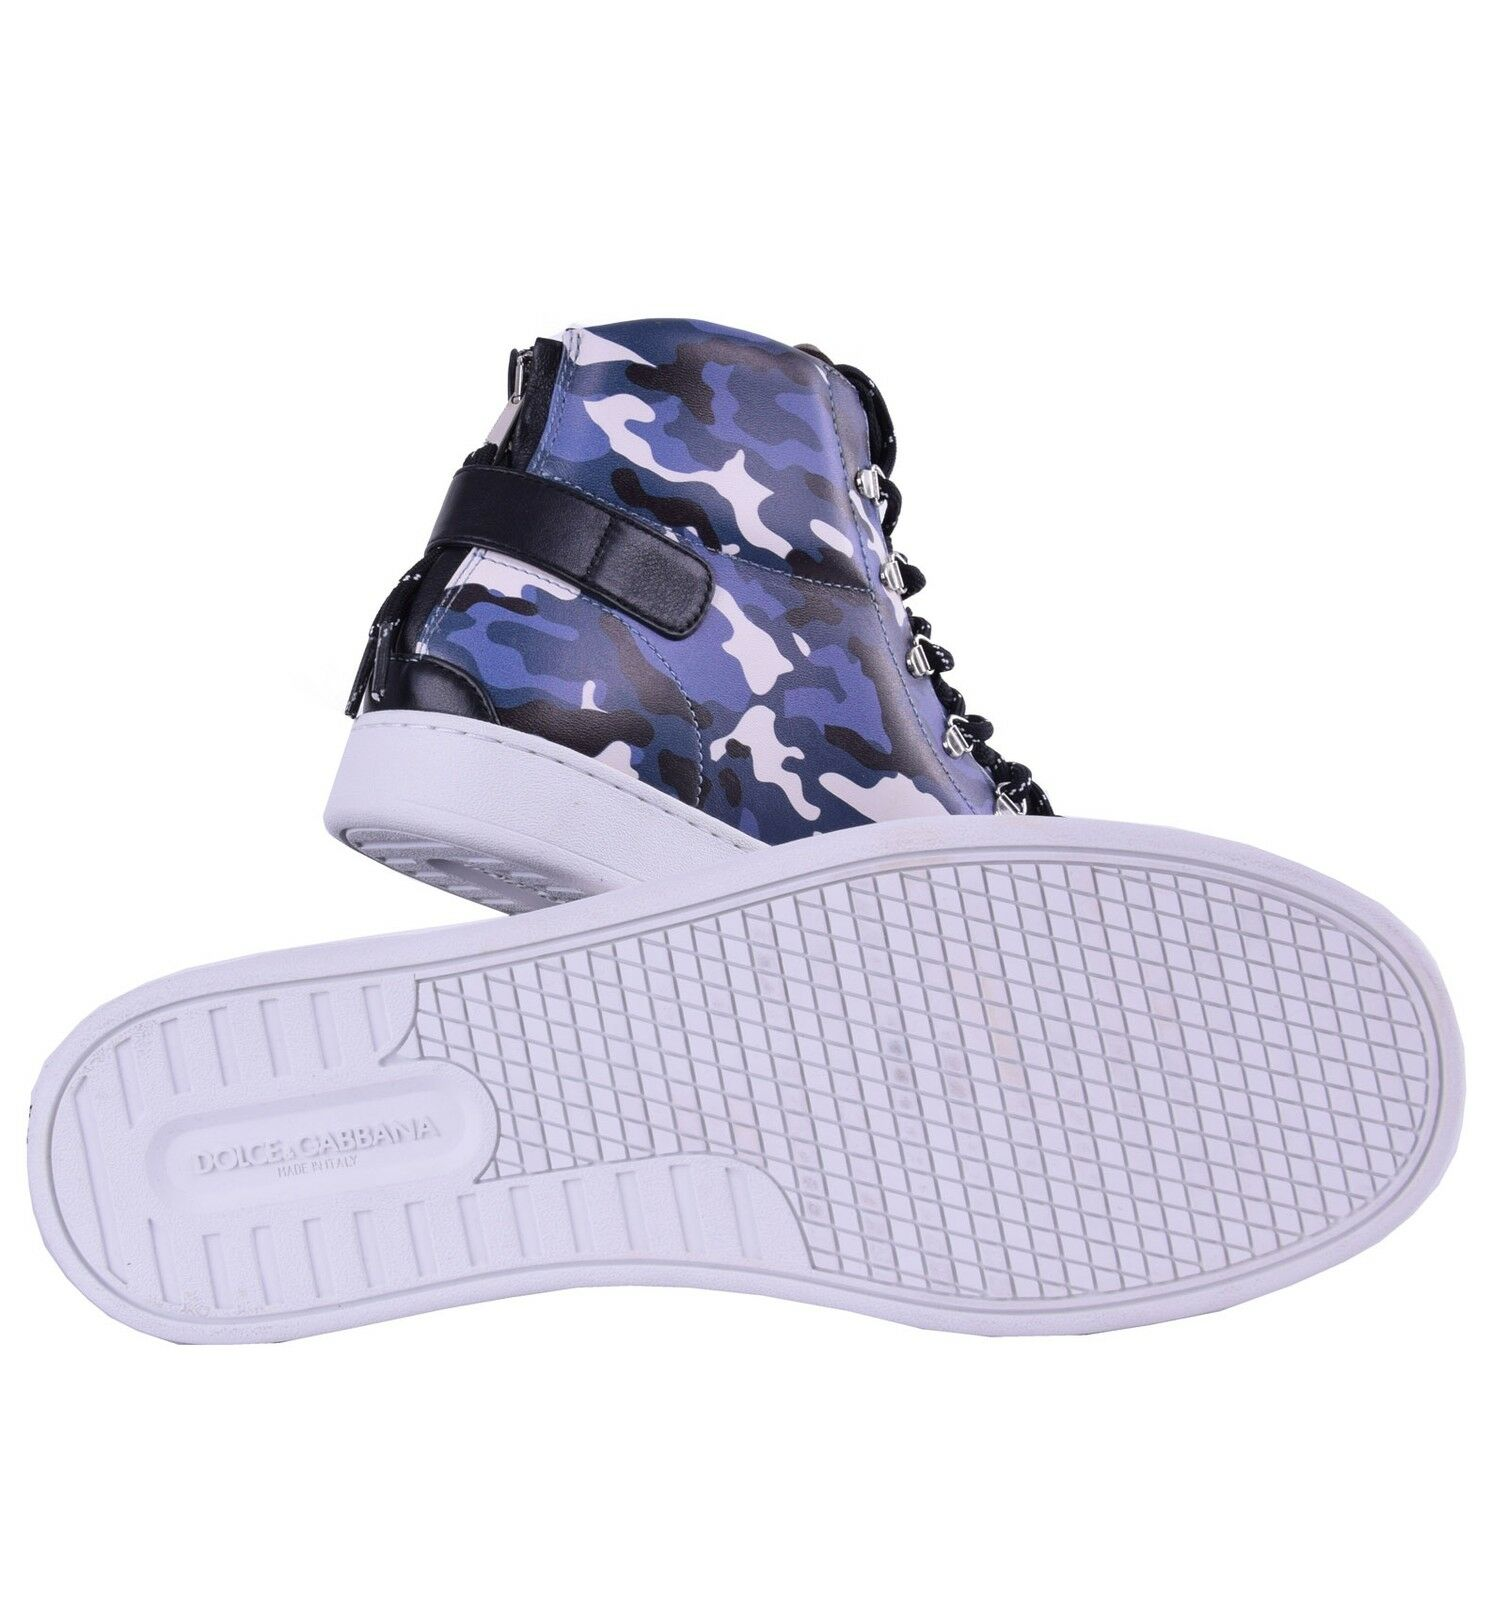 DOLCE & Made GABBANA High-Top Sneakers Camouflage Print Blau Made & in  04646 560a3c